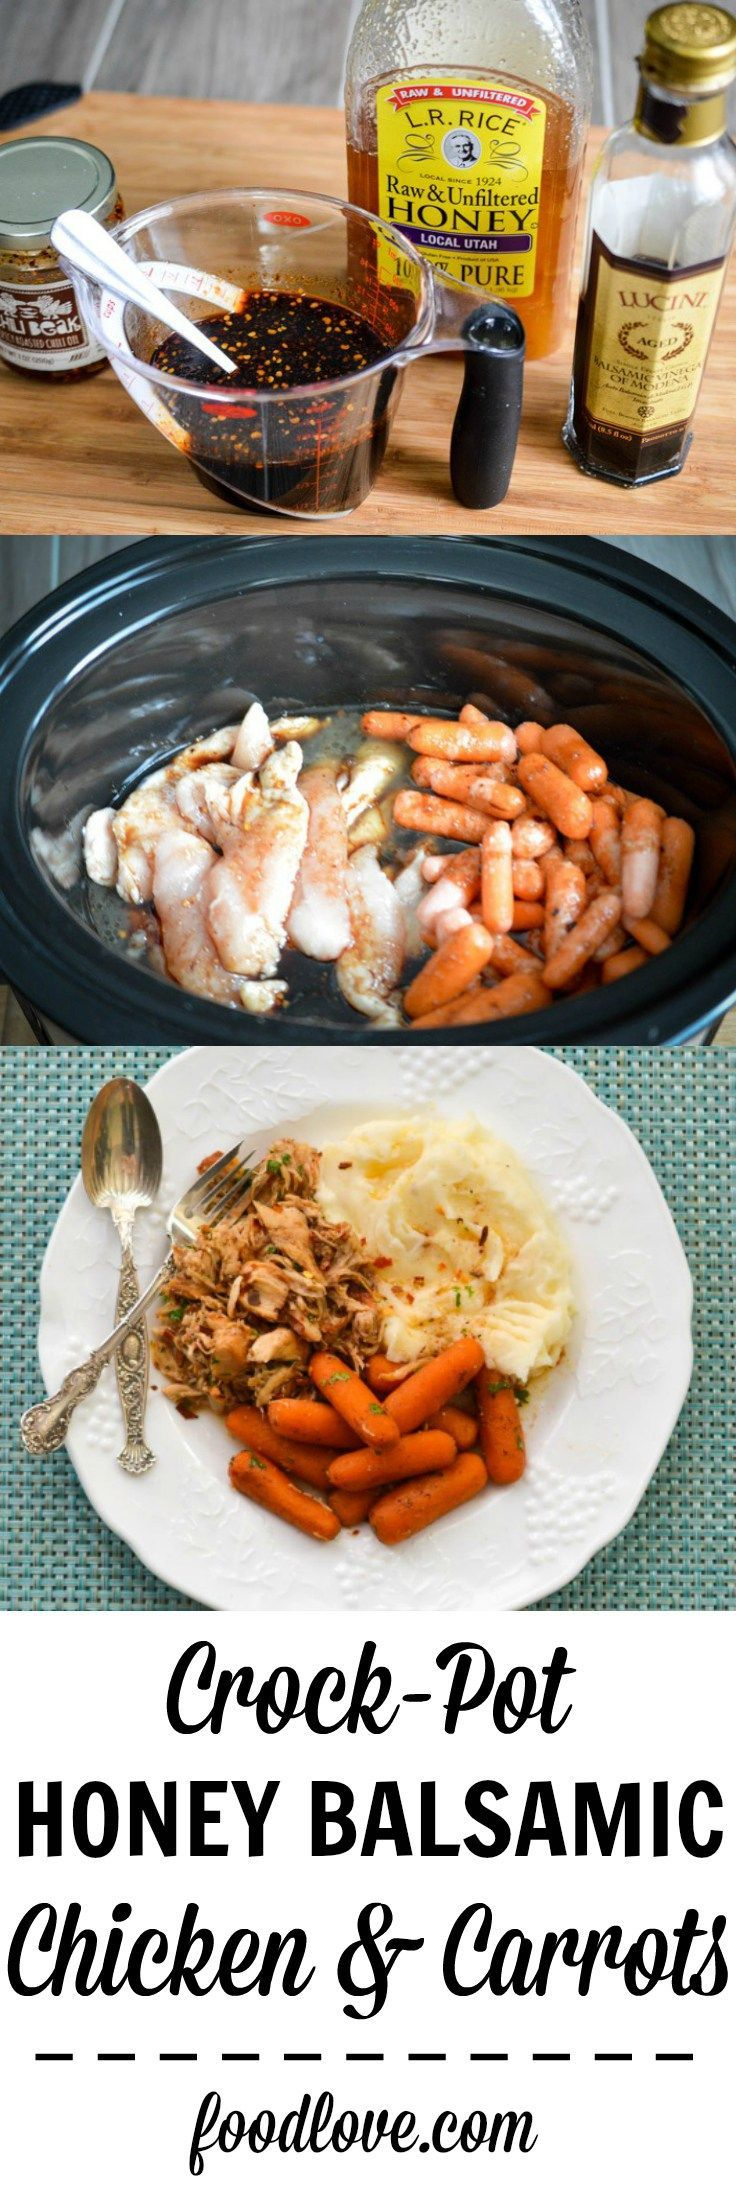 Chicken breasts and carrots get a flavor boost from balsamic vinegar, honey, garlic and chile oil for this simple, tasty crock-pot honey balsamic chicken.